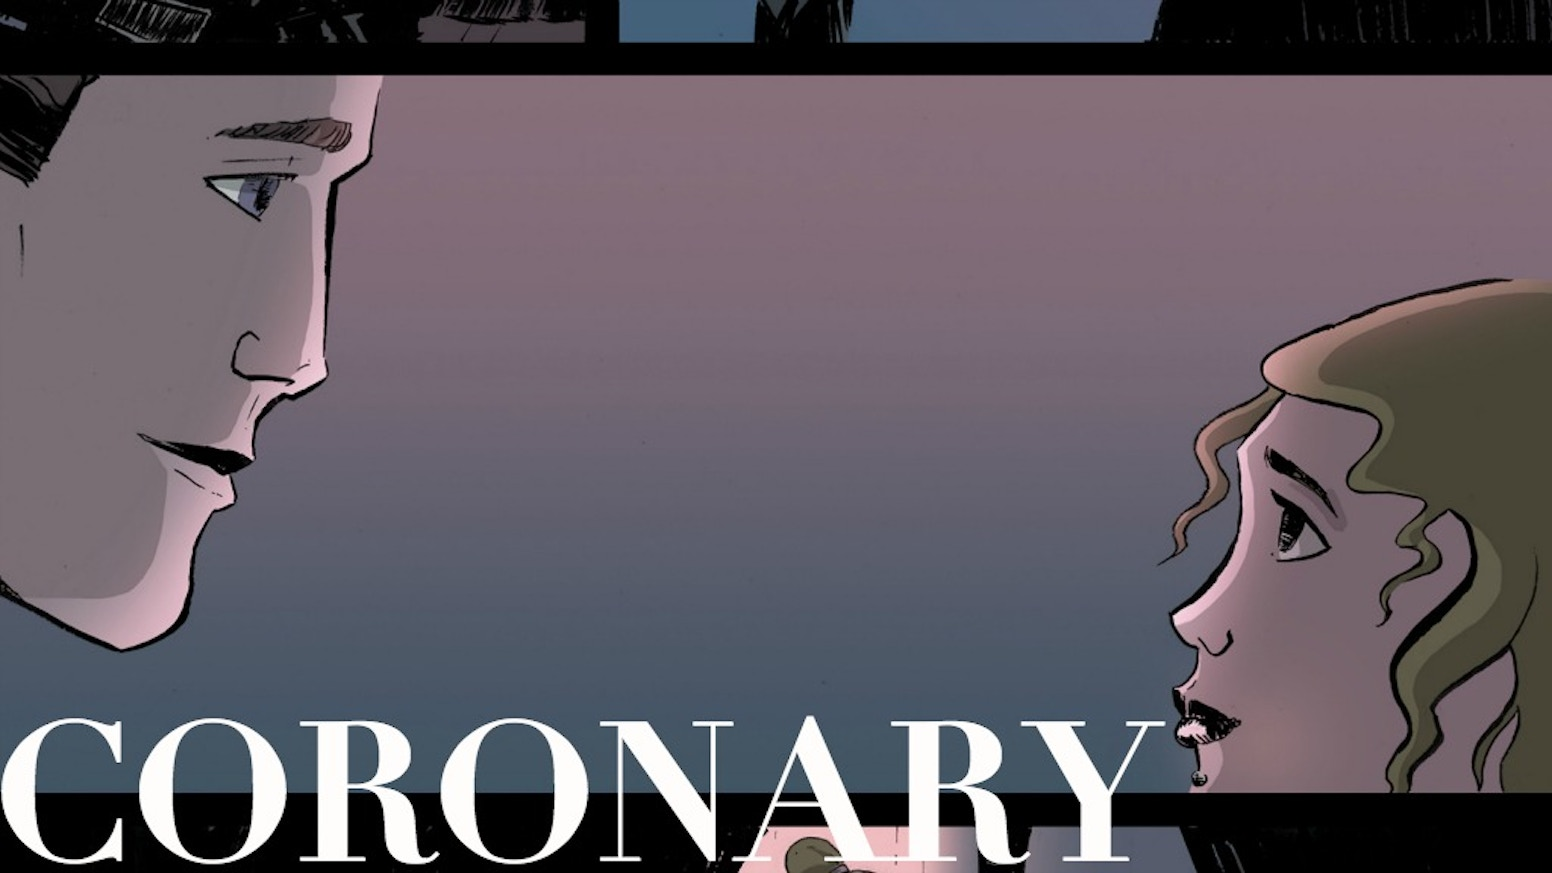 Plastic Surgery; Fashionable, free of charge. Romeo and Juliet meets Black Mirror in a debut comic where nothing is sacred.